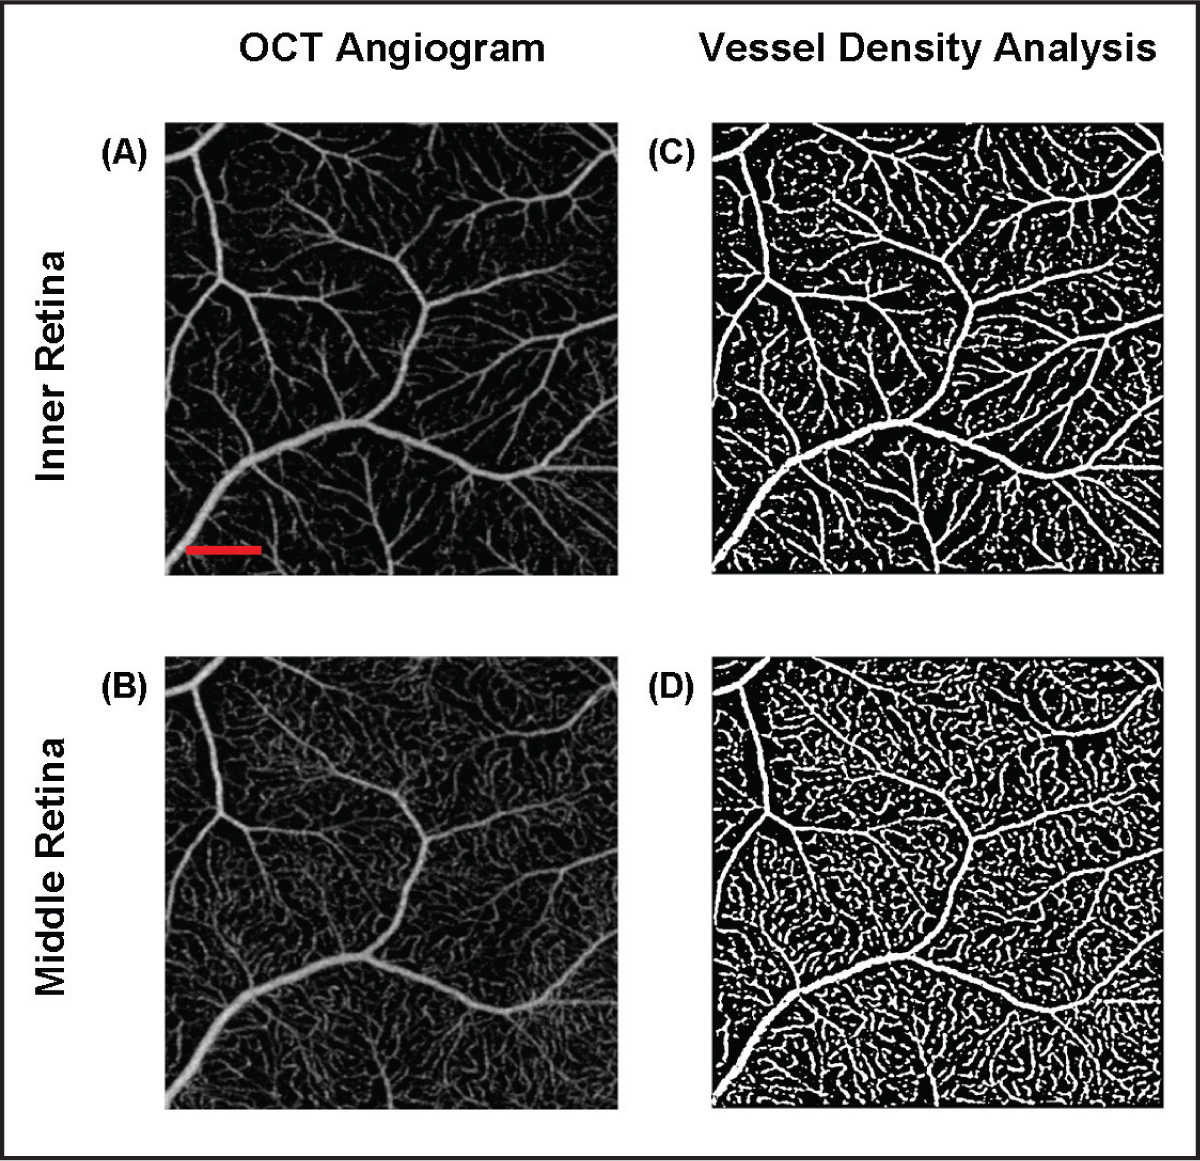 OCT angiogram and vessel density analysis of a 3 × 3 mm2 area in the temporal macula region of a healthy subject. En face representation of the retinal vessels in the (A) inner retinal layer shows a qualitatively lower vascular density than either the foveal or peripapillary areas in previous figures. En face representation of the retinal vessels in the (B) middle retinal layer show a more discontinuous, lattice-like arrangement of vessel segments. (C,D) Contrast enhanced images of the respective retinal regions in (A) and (B). Vessel density analysis of the inner retina showed an average total density of 22.58 ± 1.66. Vessel density analysis of the middle retina showed an average total density of 28.21 ± 2.04. The scale bar in (A) shows a distance of 500 µm. This scale applies to (A–D).